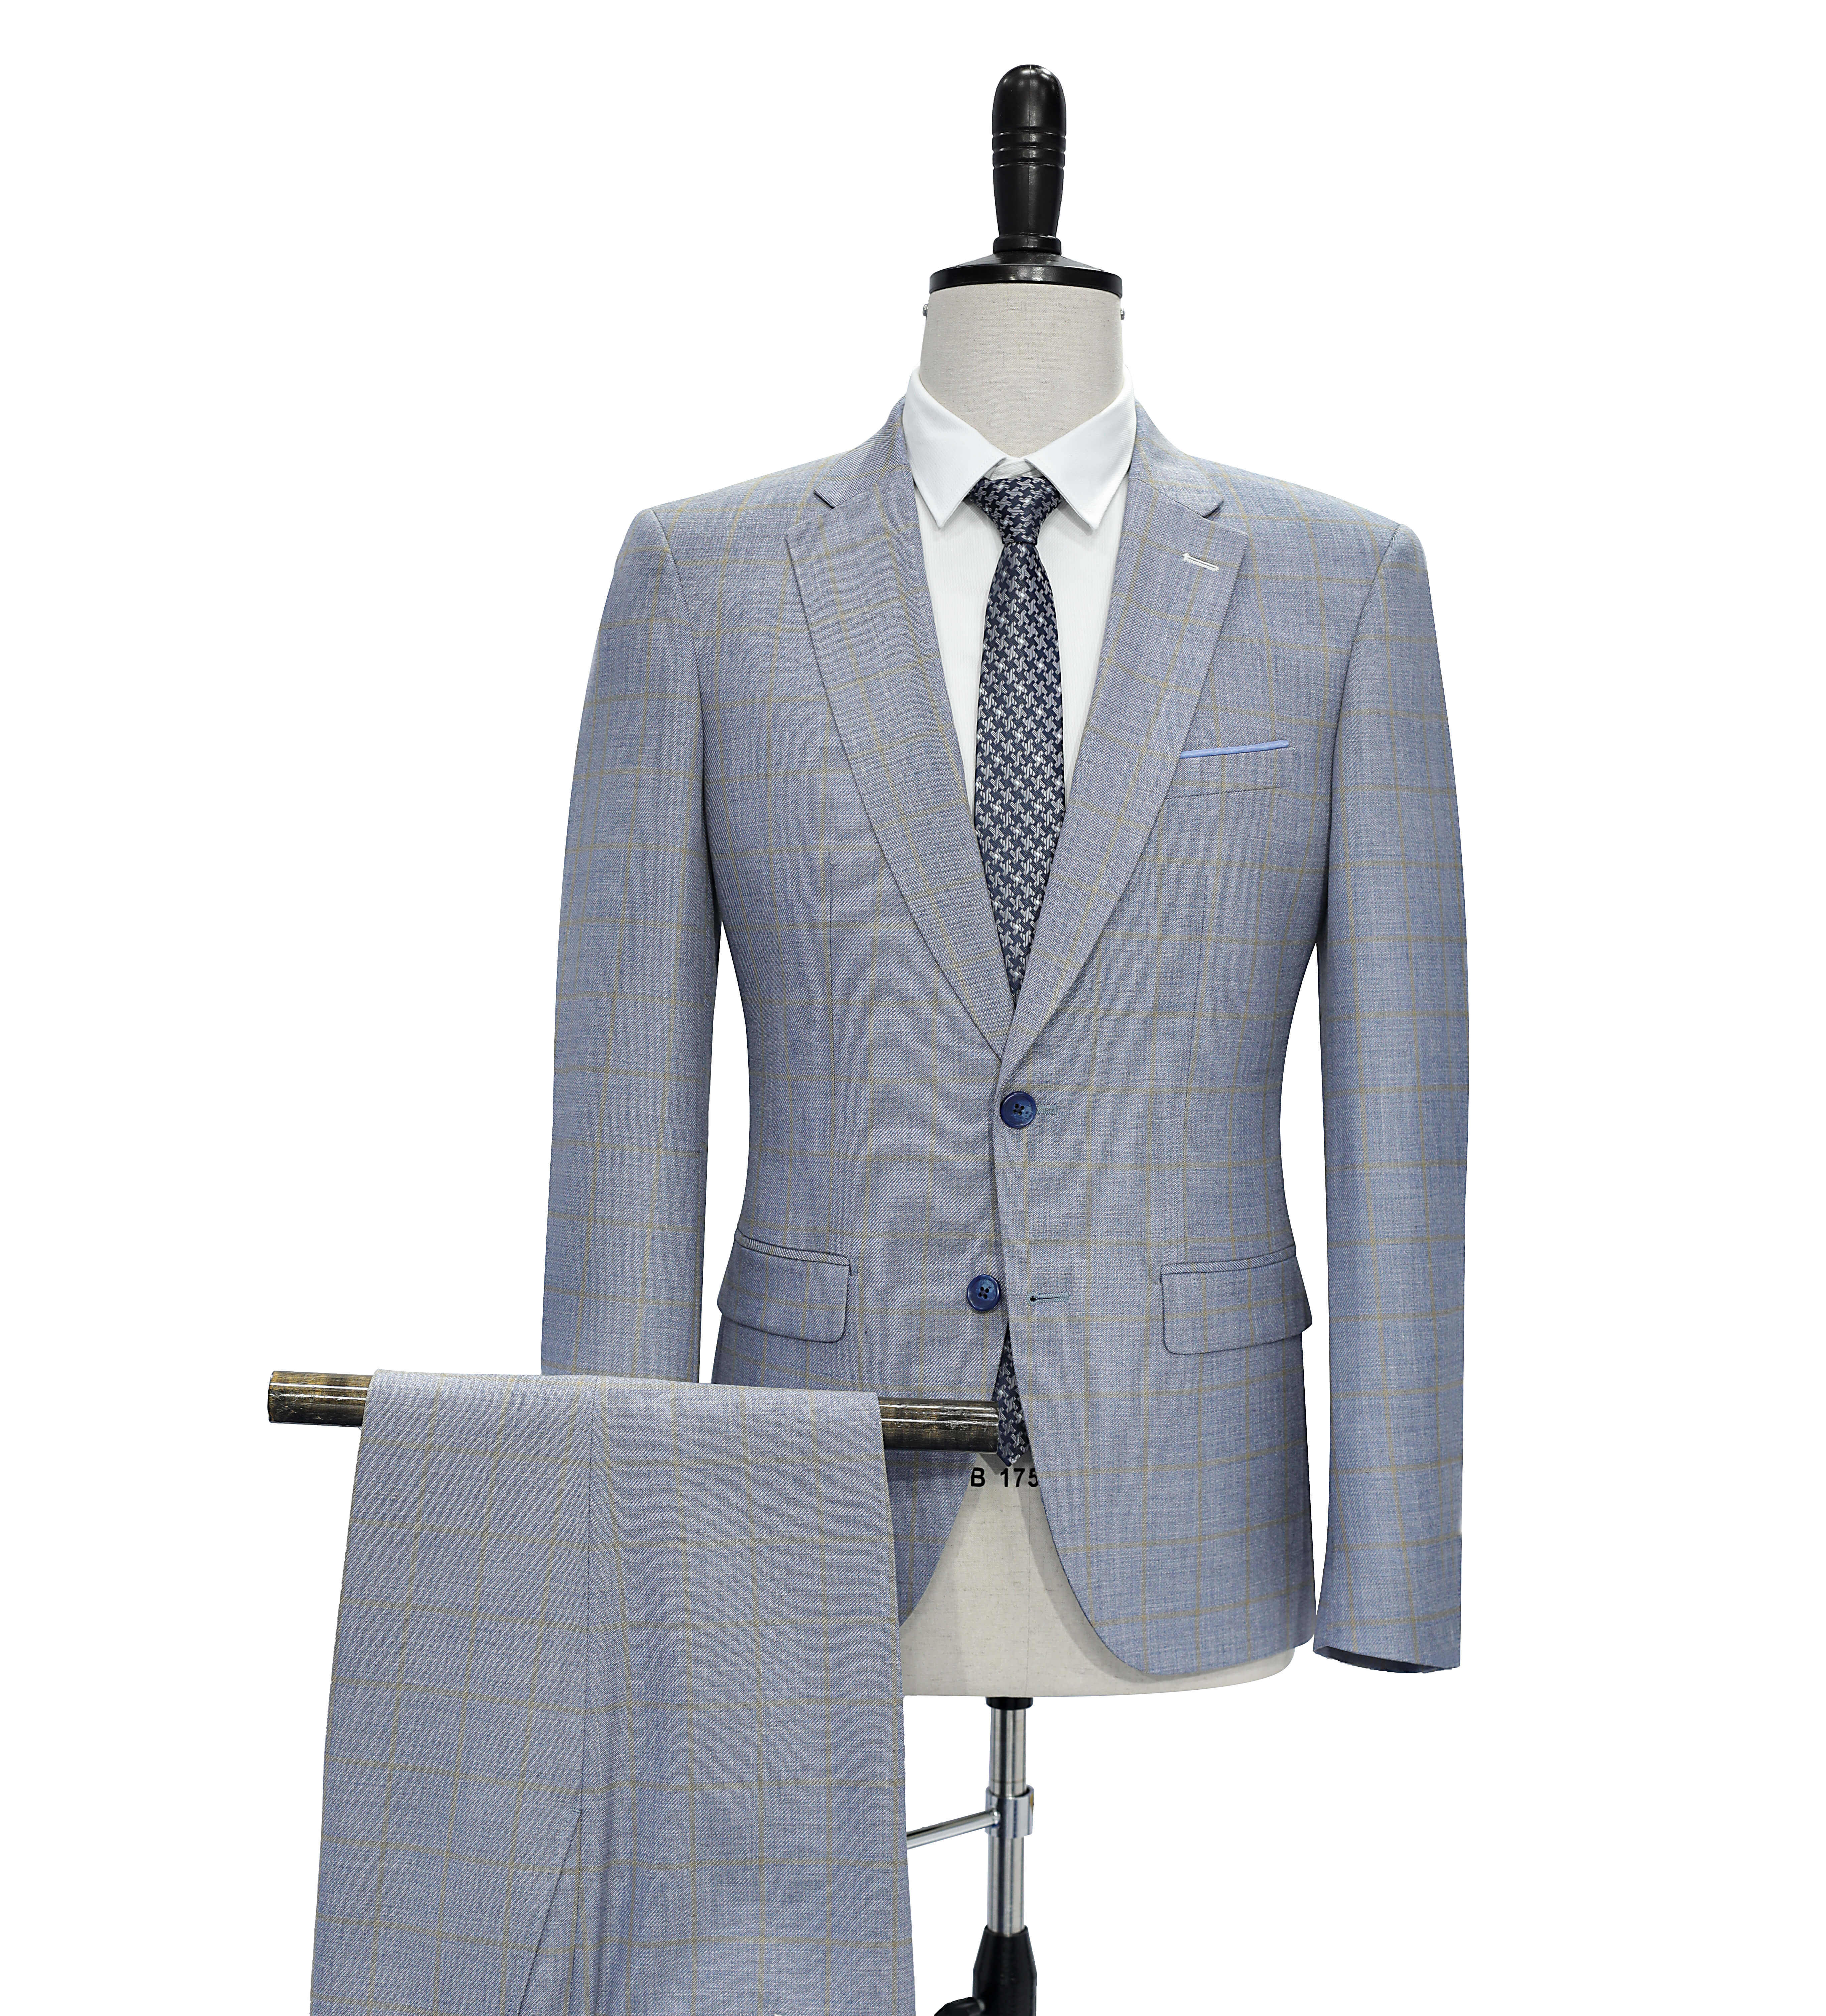 2 pcs Check Mens Grey Suits For Weddings Made In China Suits For Men 2020 Men'S Floral Suits